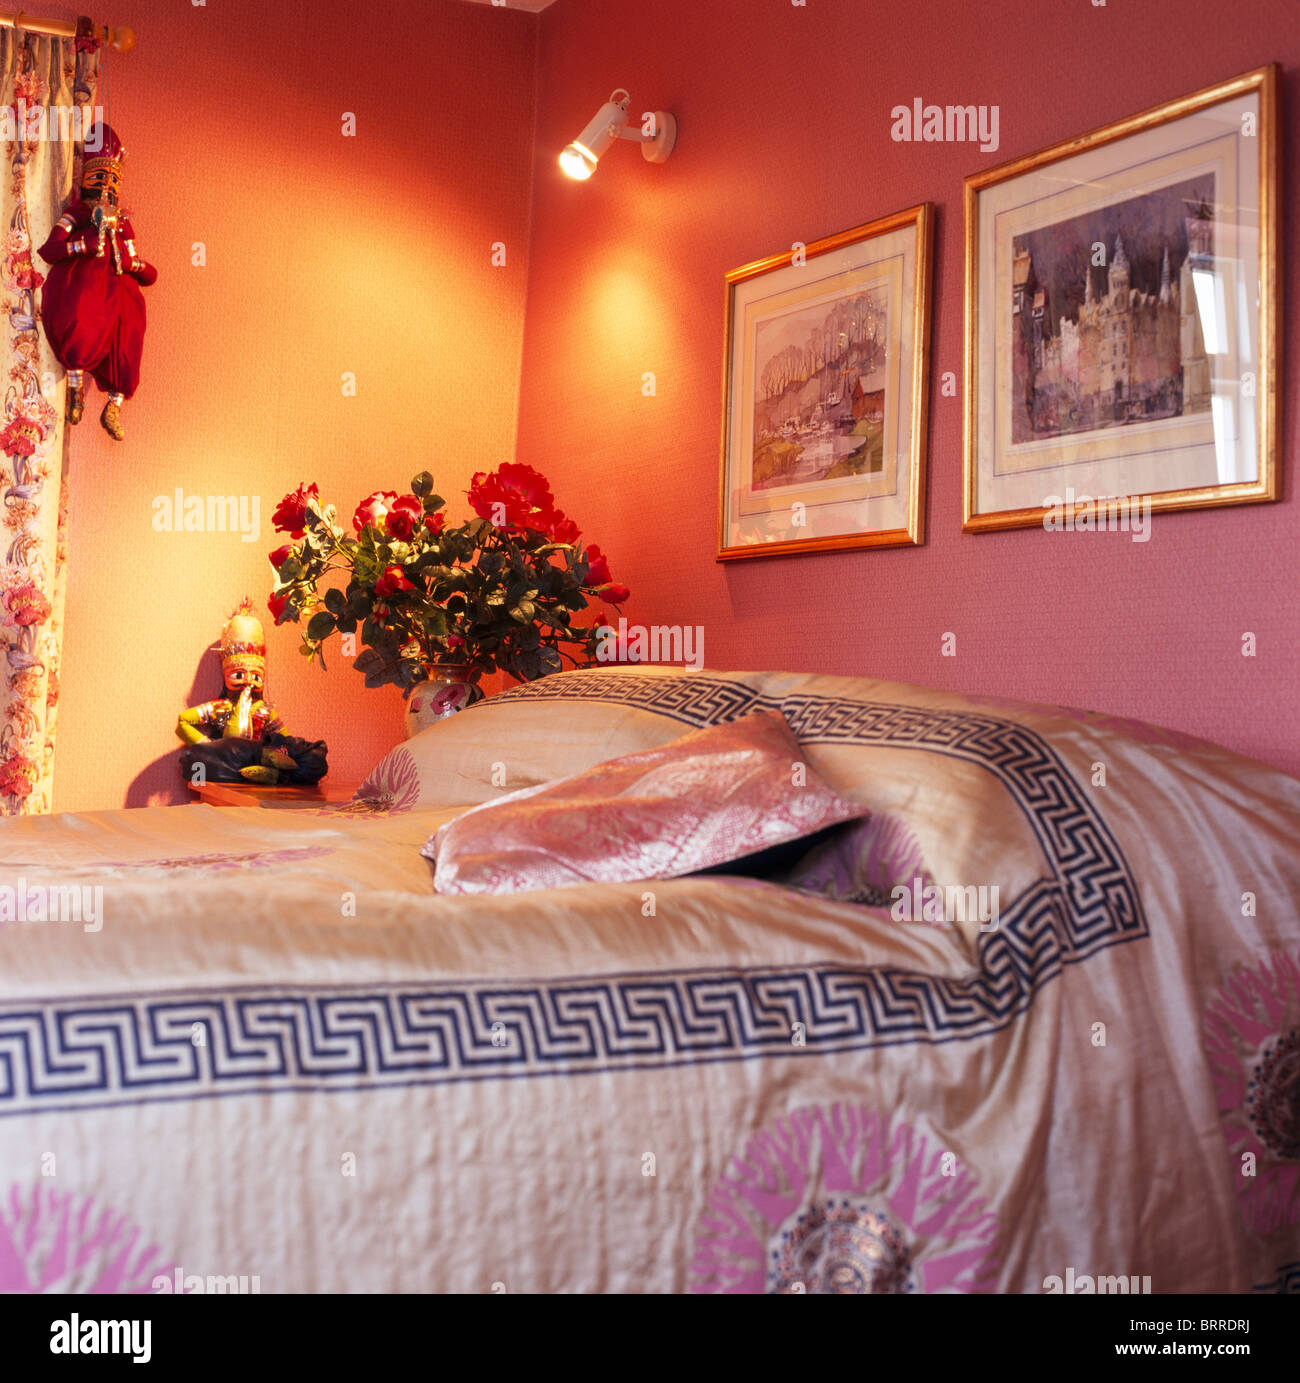 Orange And Pink Bedroom Interiors Bedrooms Traditional Bed Covers Stock Photos Interiors